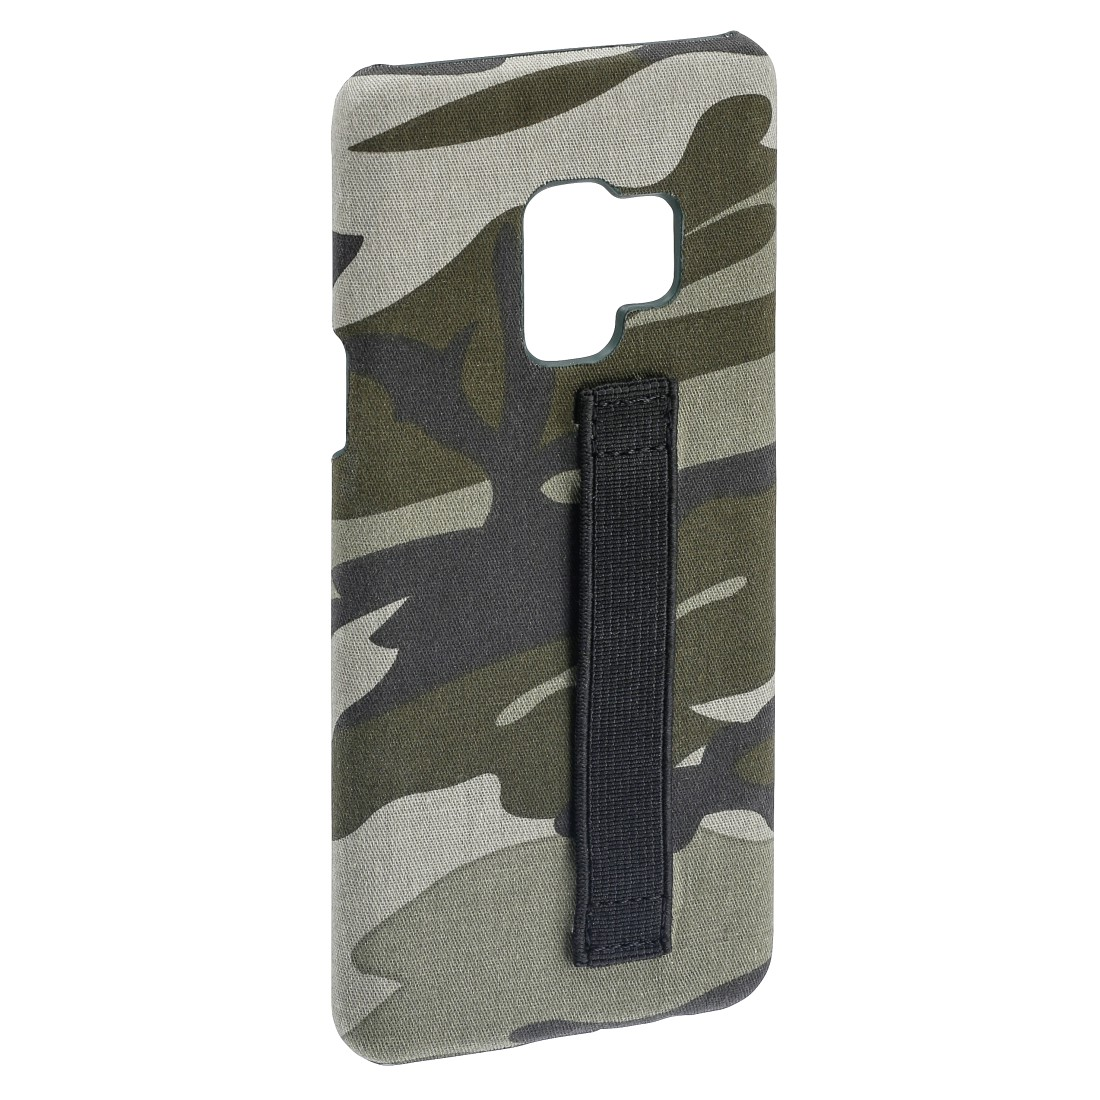 "abx2 High-Res Image 2 - Hama, Coque de protection ""Camouflage Loop"" pour Samsung Galaxy S9, verte"